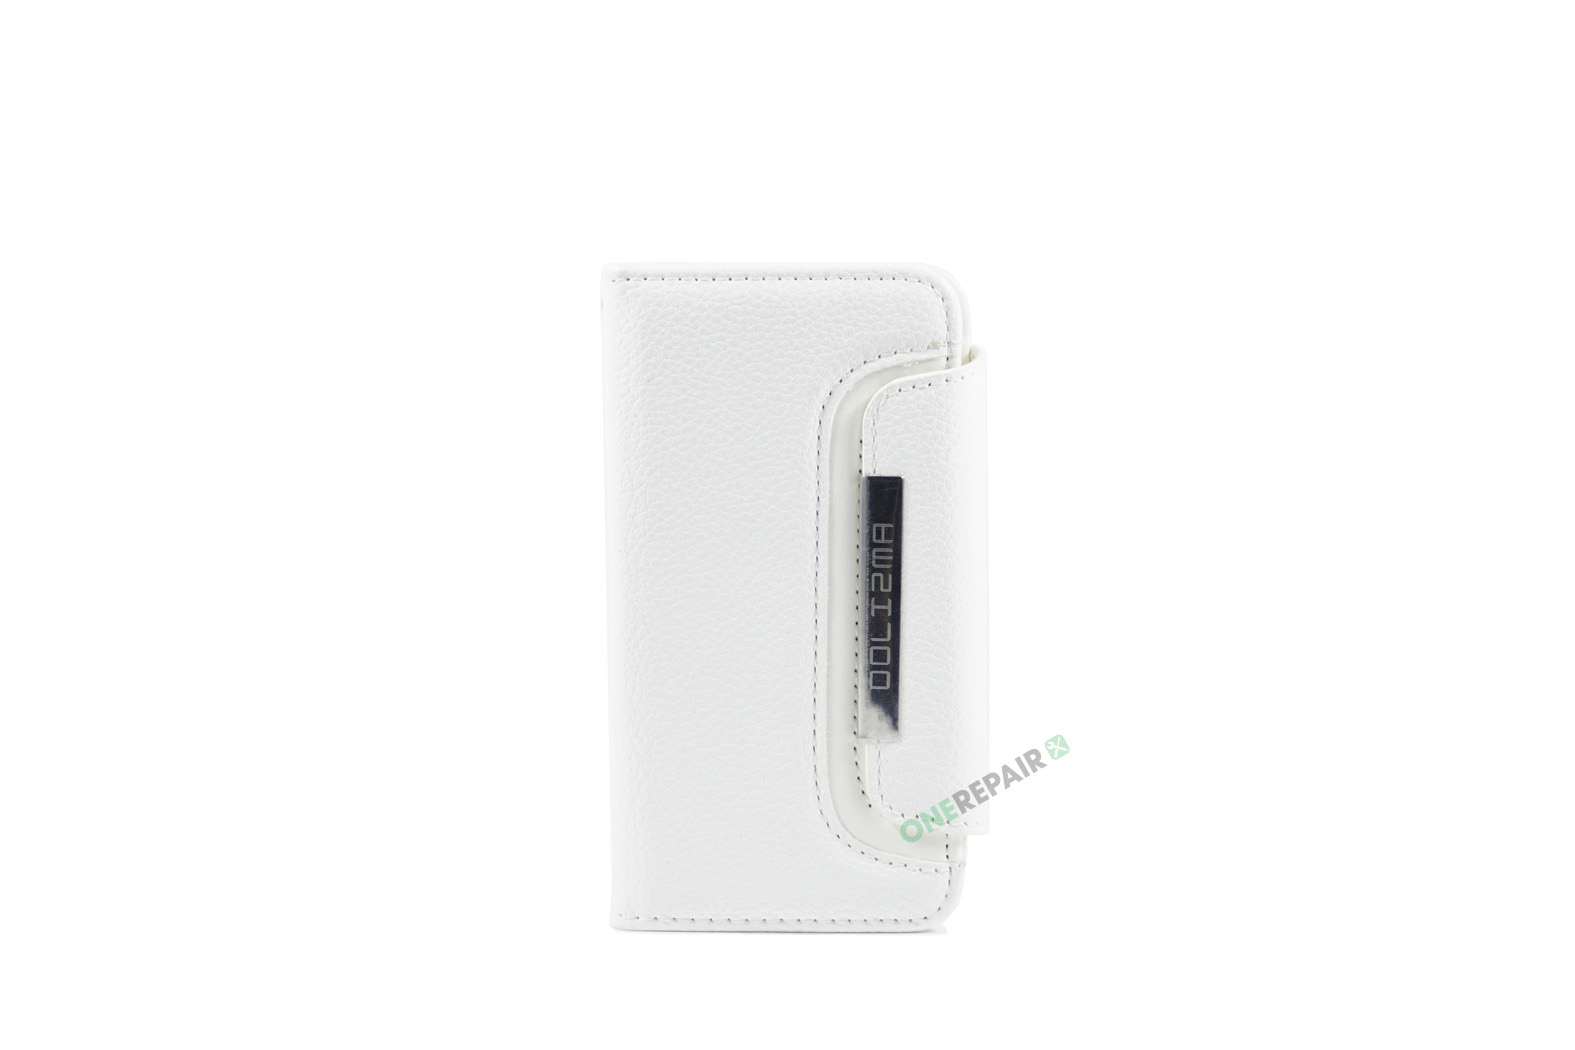 Billig iPhone 5 5S SE Flipcover Magnetcover Magnet kan tages ud Cover Bagcover Gummicover A1453 A1457 A1518 A1528 A1530 A1533 A1428 A1429 A1442 A1723 A1662 A1724 Hvid